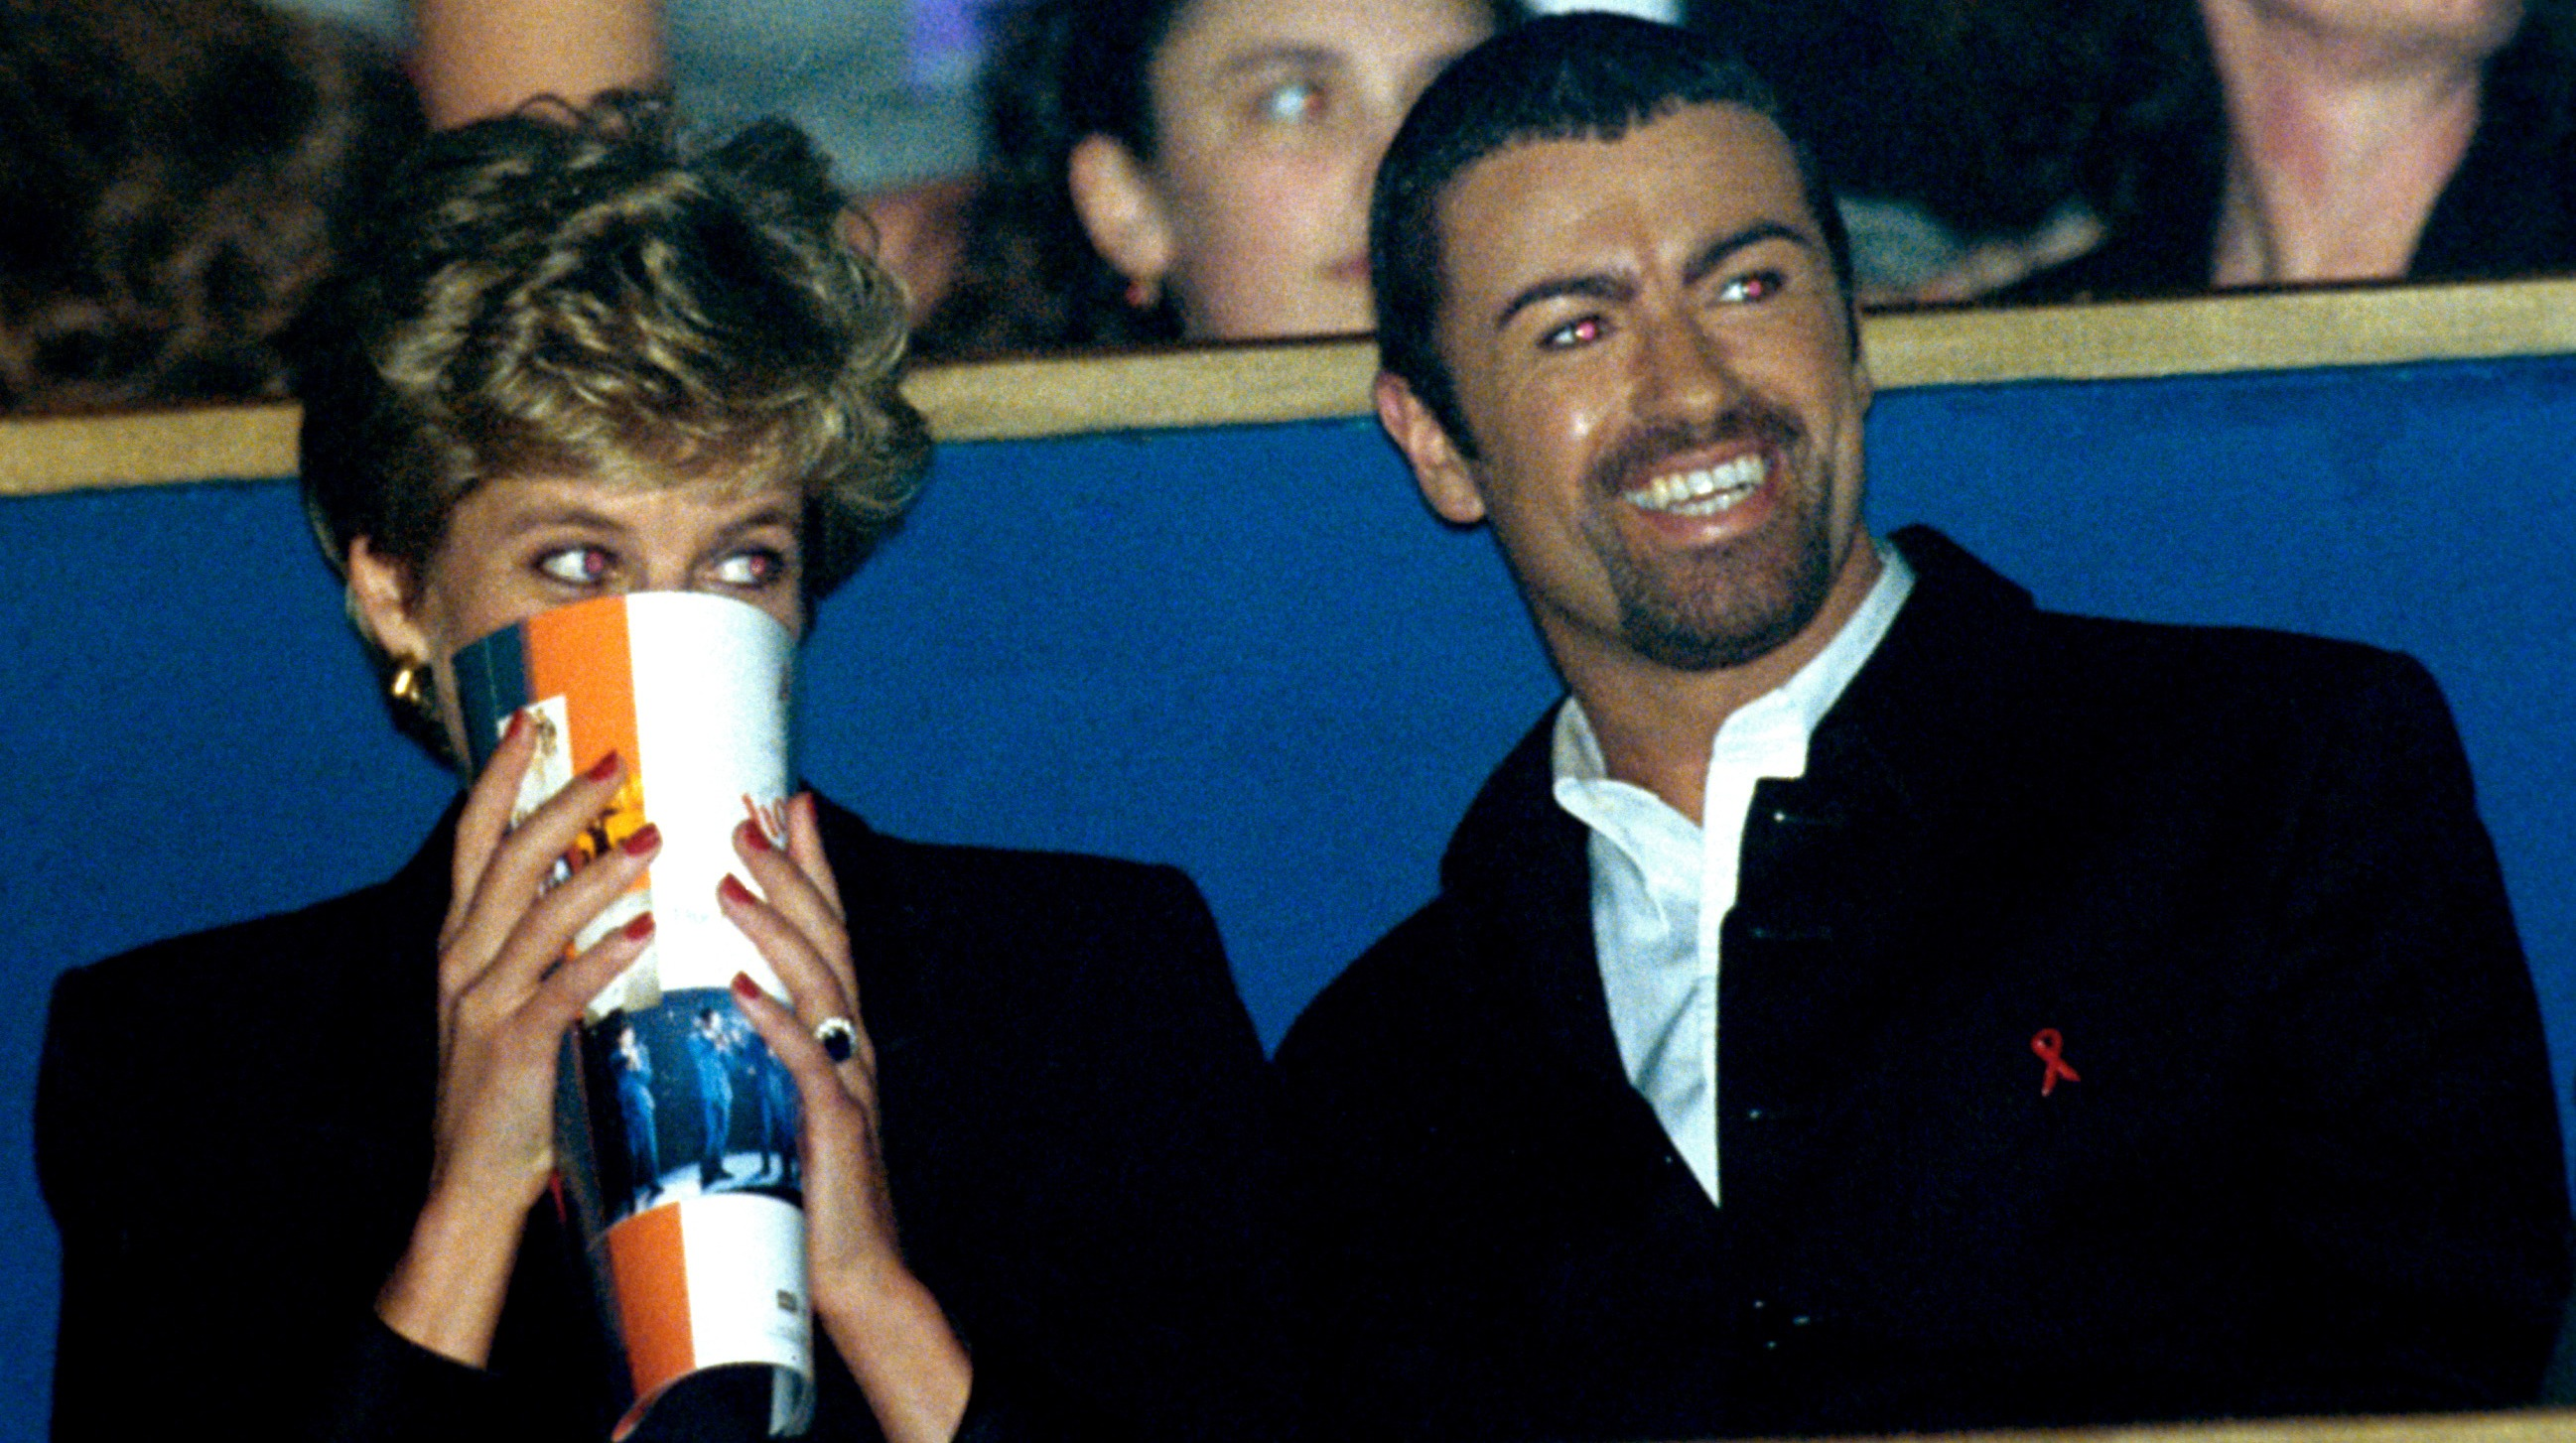 Princess Diana and George Micheal Photo (C) GETTY IMAGES